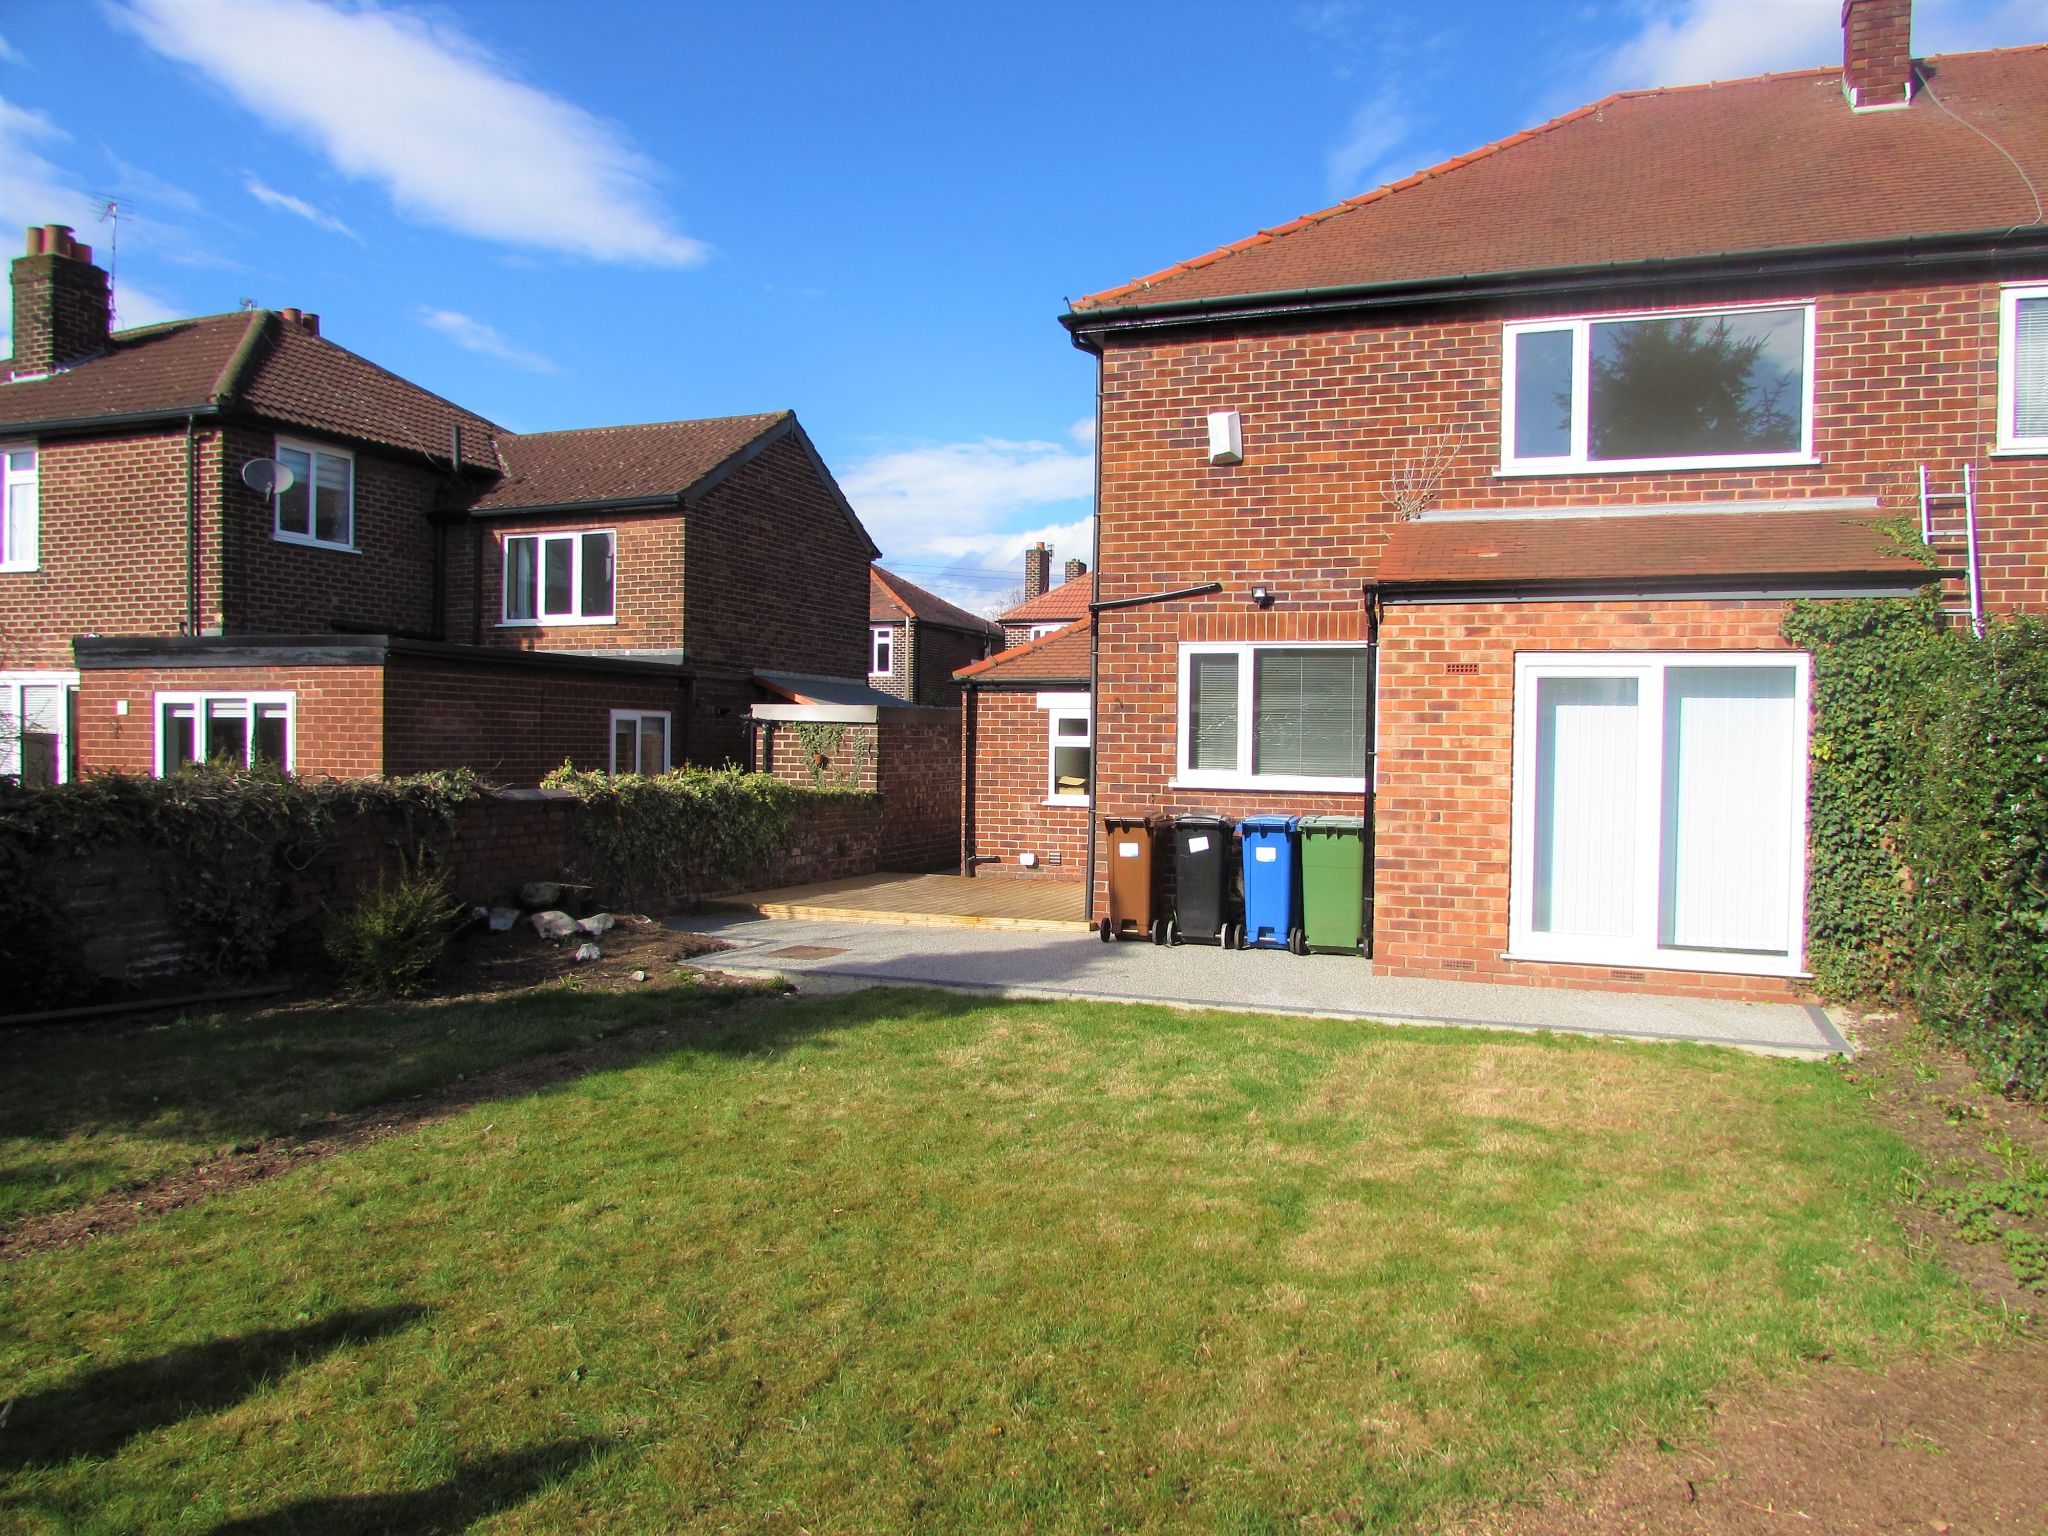 3 Bedroom Semi-detached House To Rent - Photograph 15